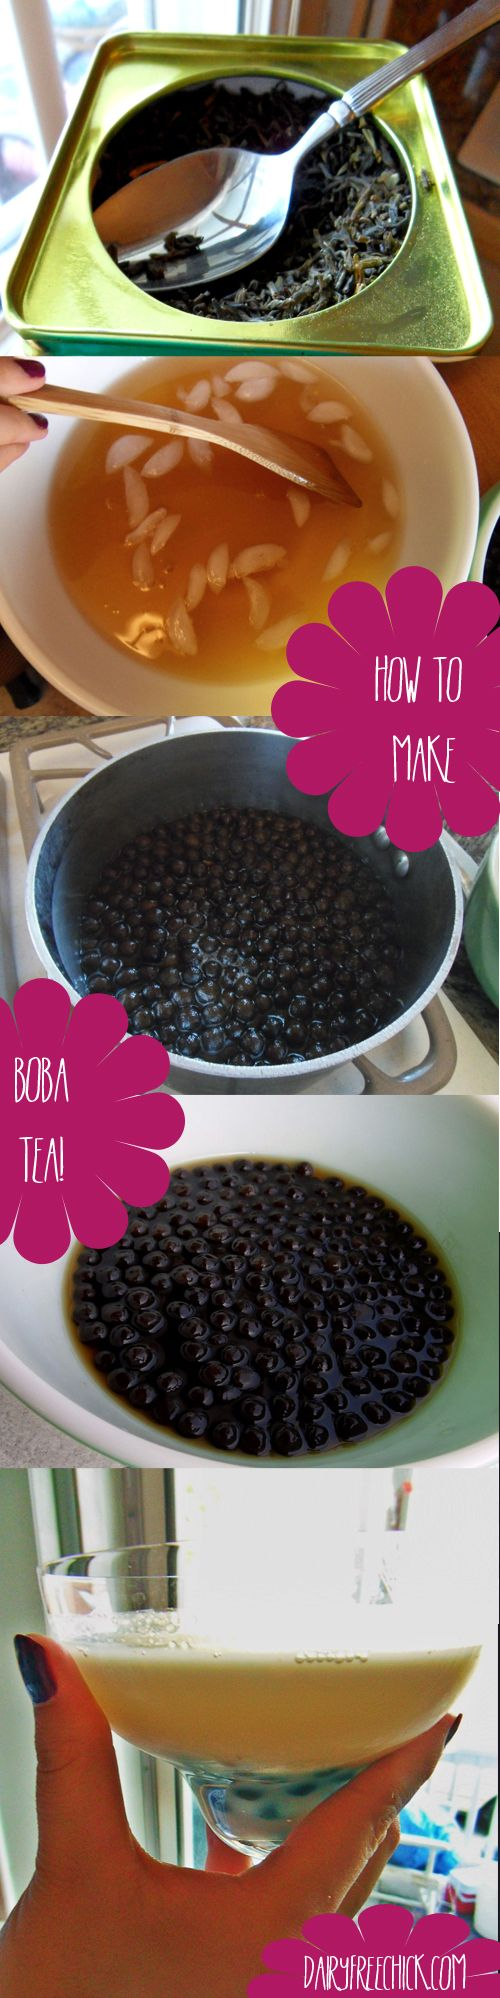 how to make boba tea at home! so much cheaper!